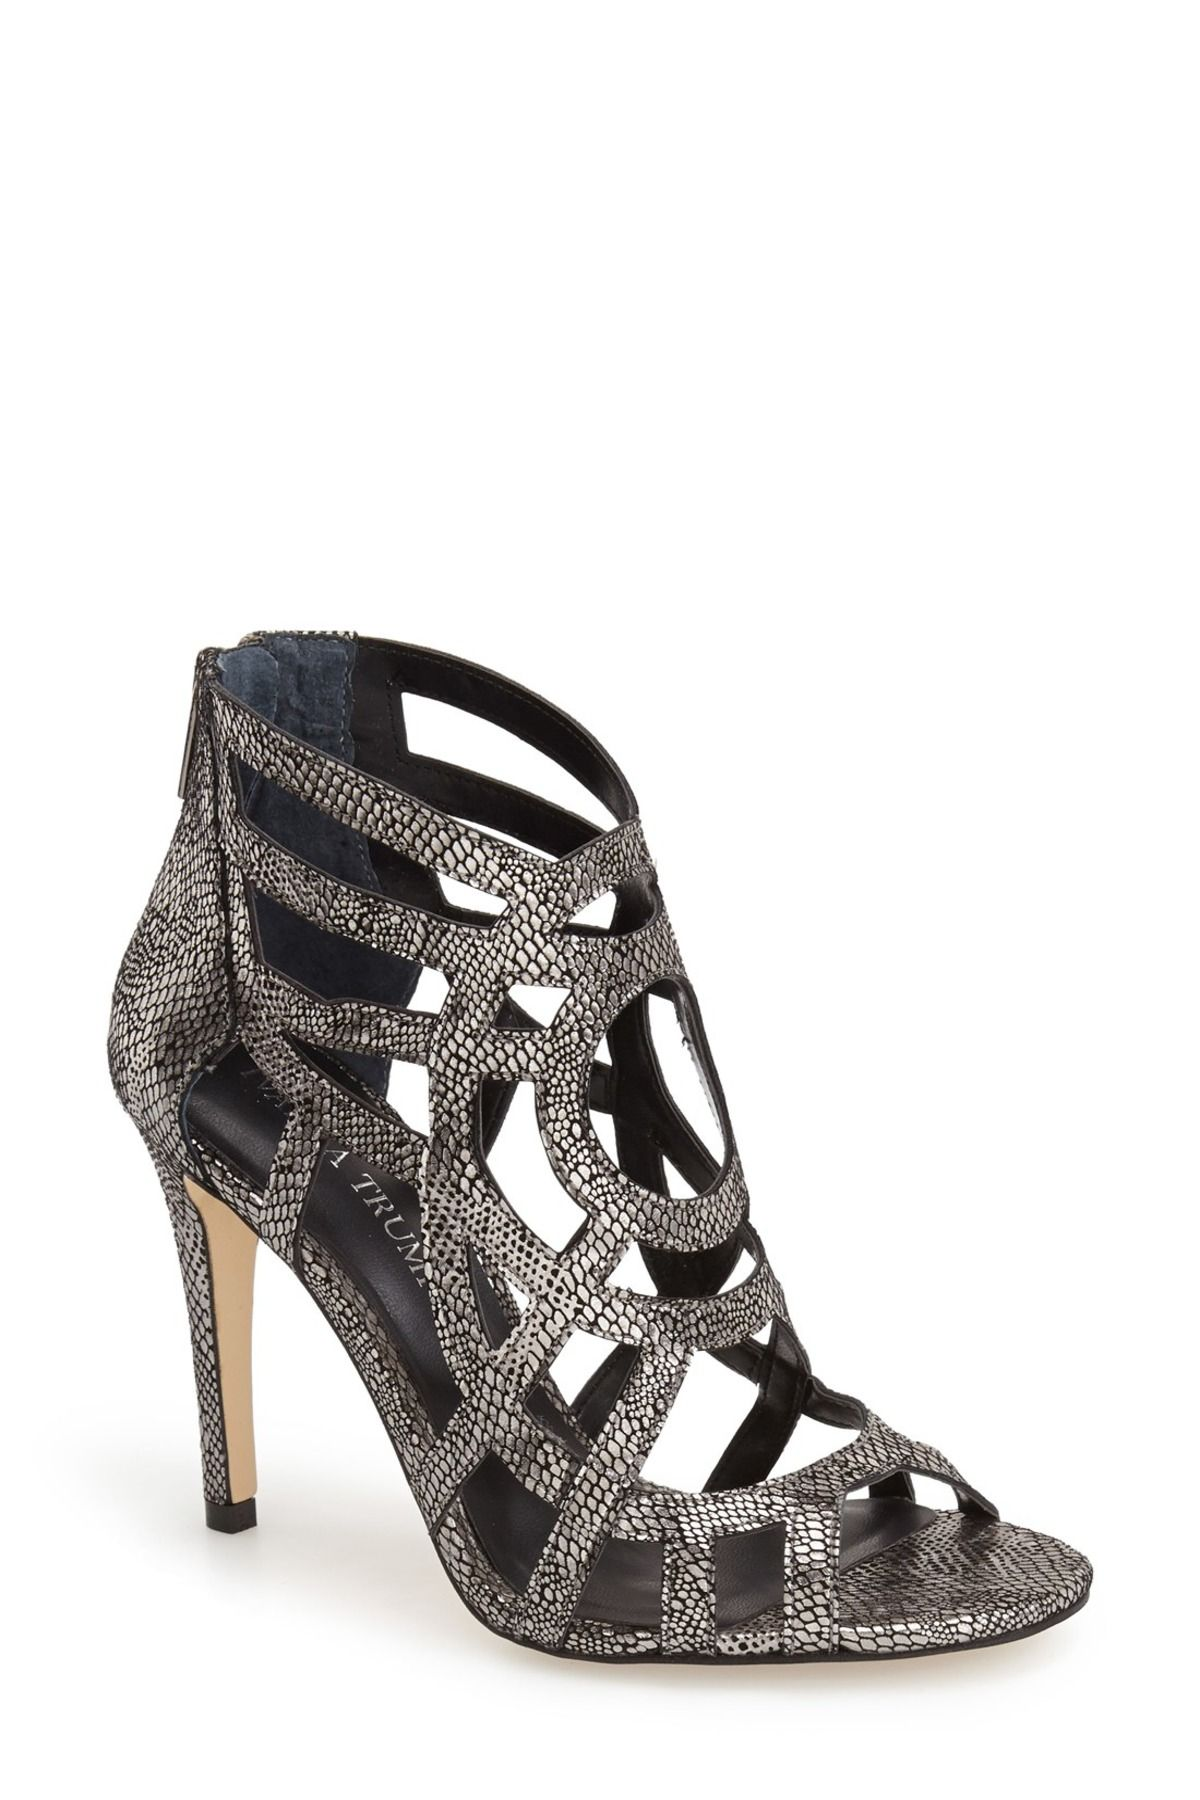 Despina Cage Sandal by Ivanka Trump on